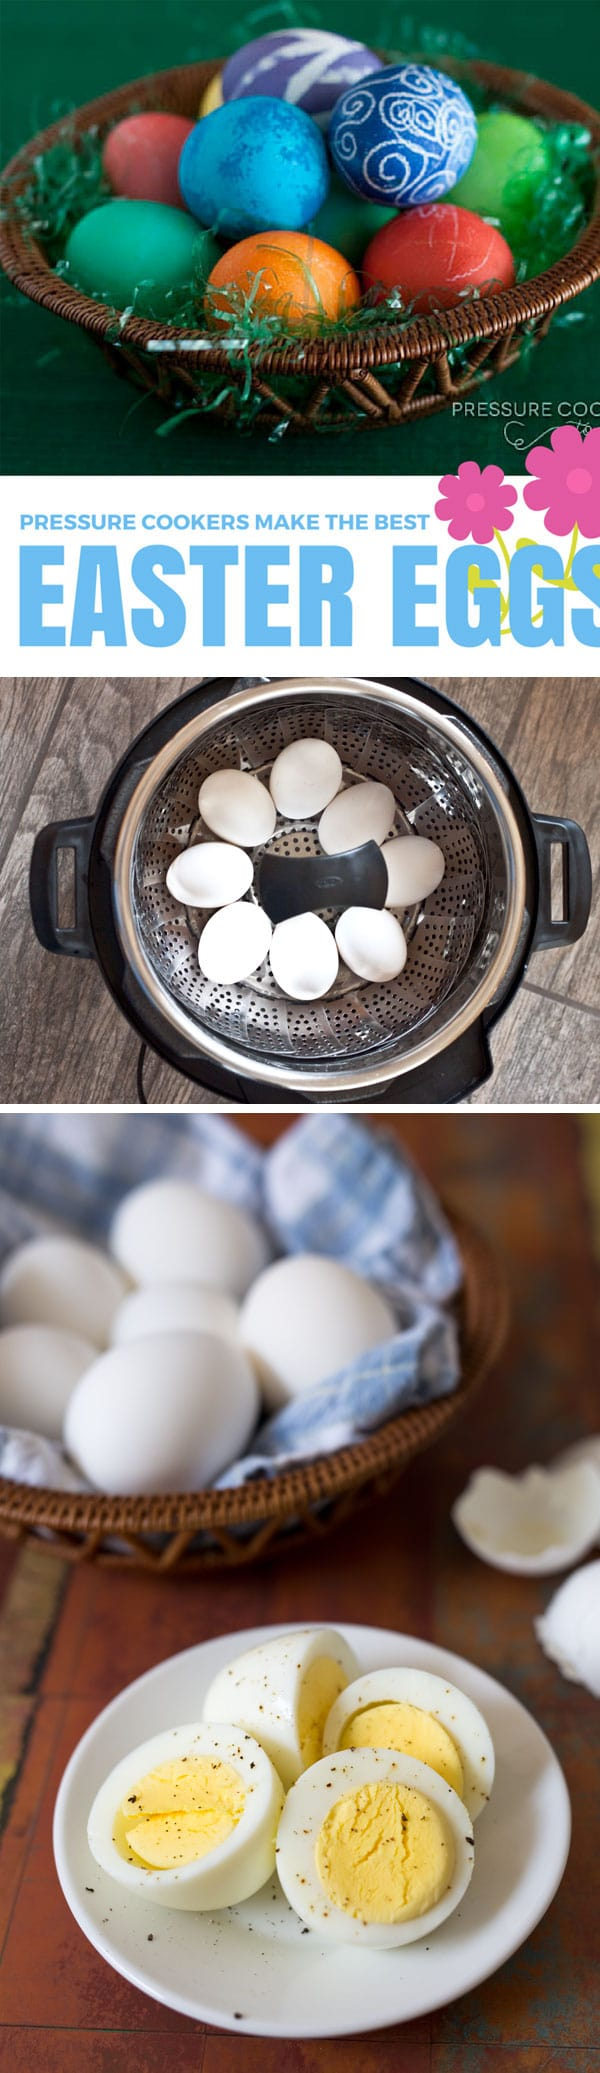 Hard Boiled Eggs for Easter in the Pressure Cooker - the best way to cook hard boiled eggs.